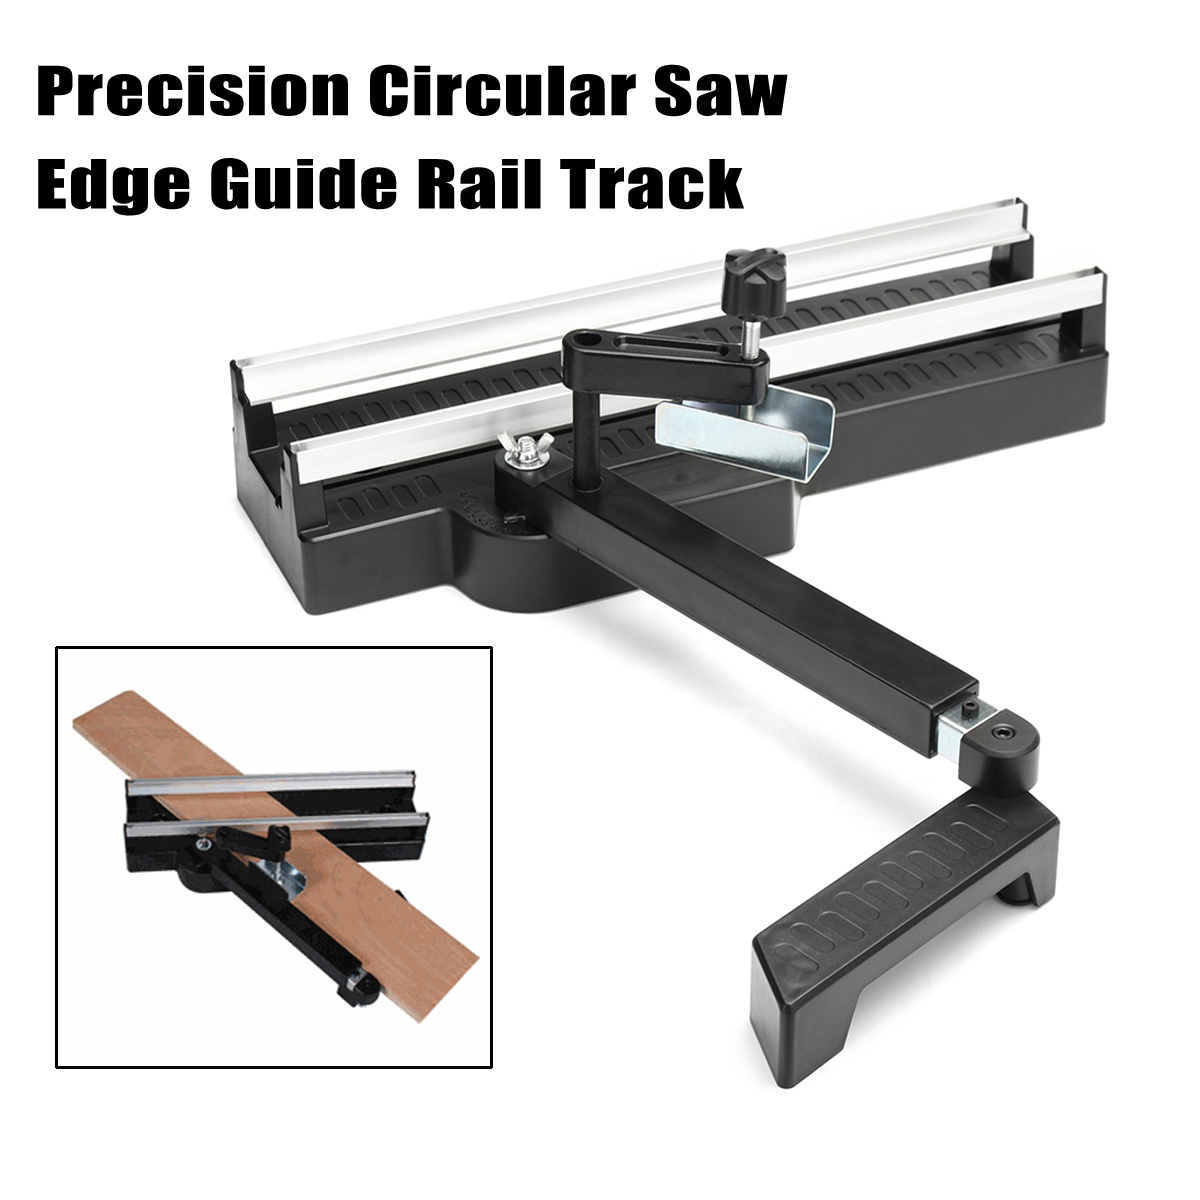 415mm Precision Circular Saw Edge Guide Rail Track Woodworking Cutting Tool Flat Edge Trimming Guide Rail 30 speeds anal plug vibrator prostate massage butt anal vibrating male masturbator erotic toys adult sex toys for men